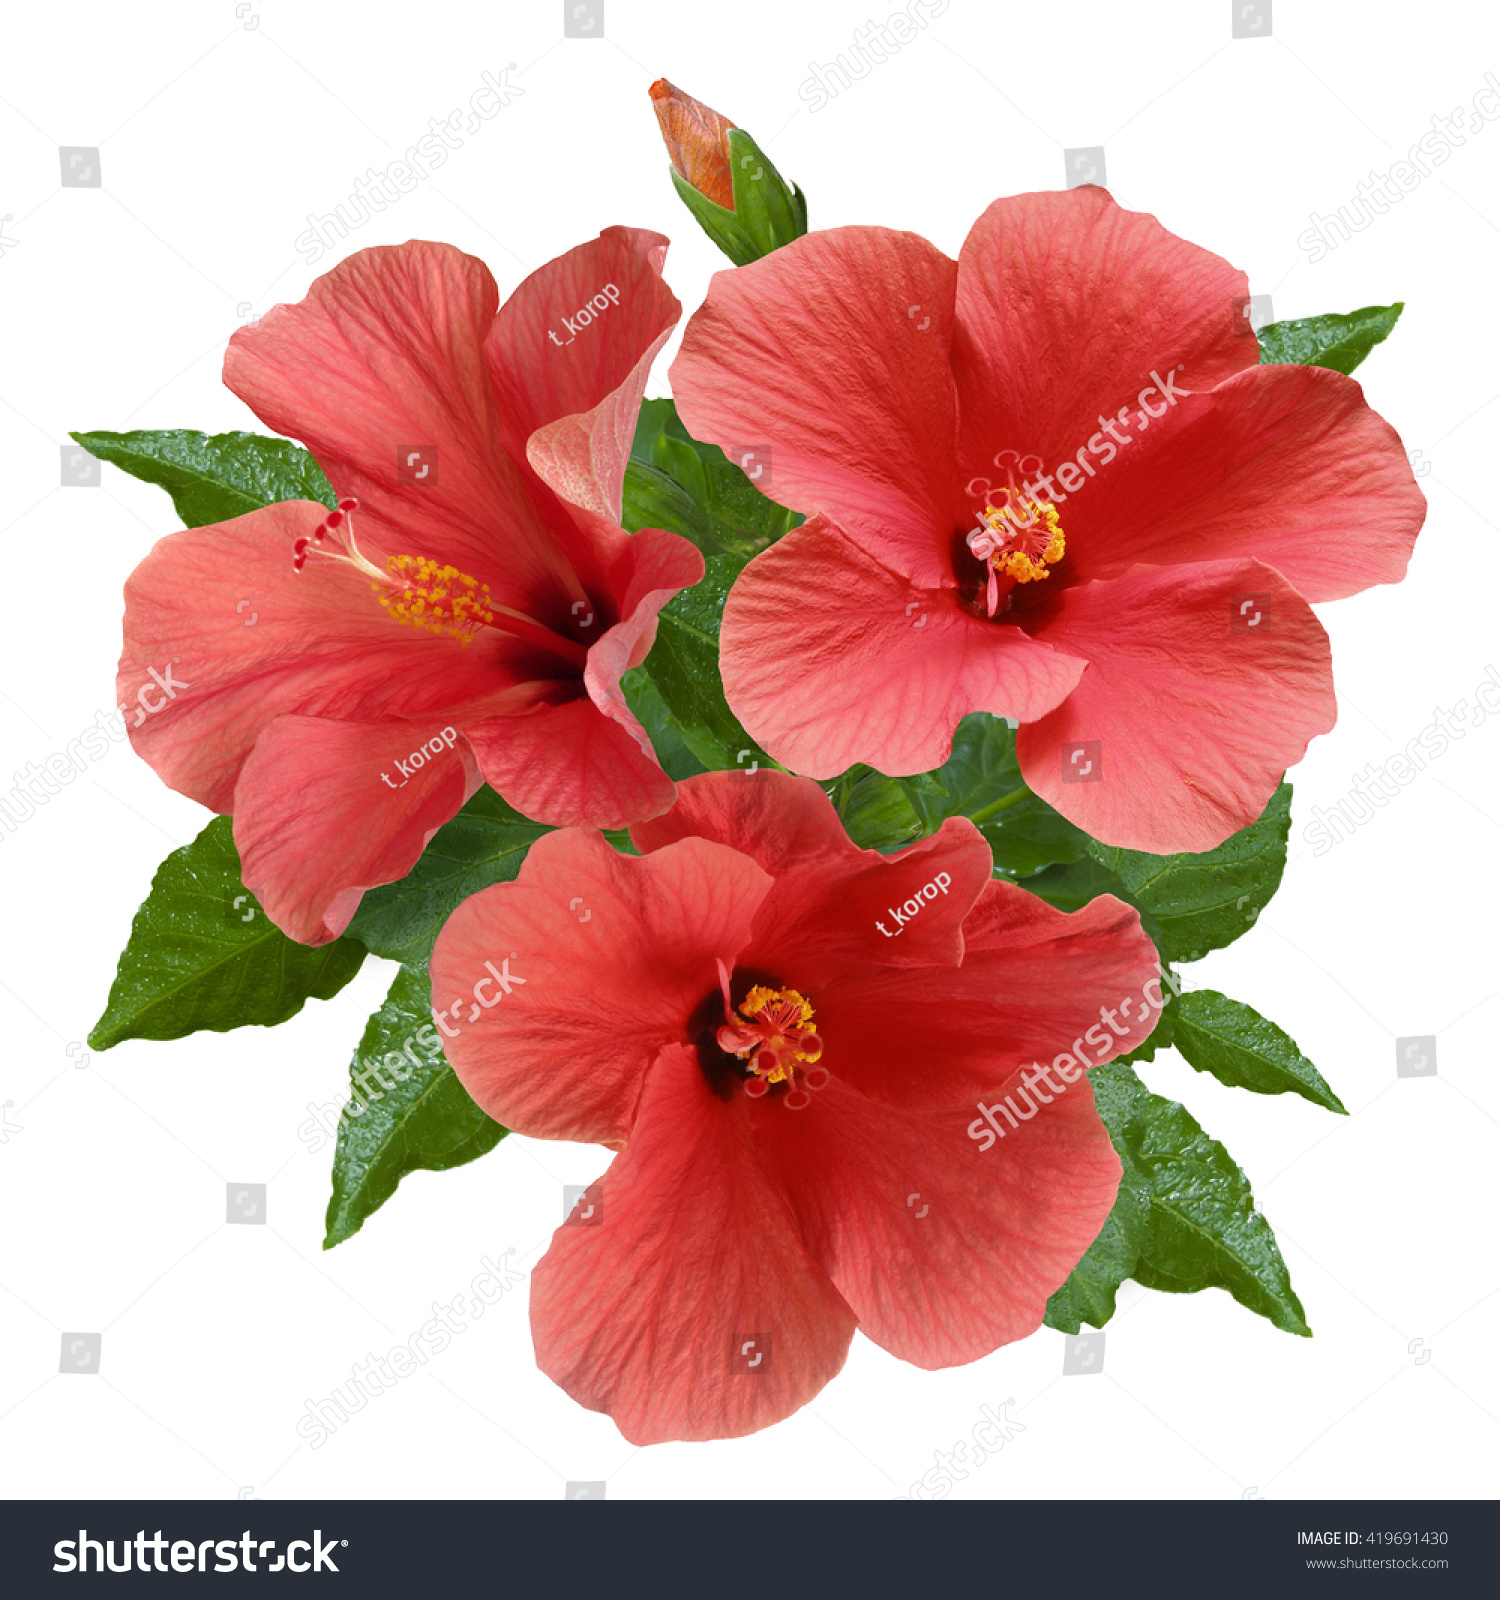 Bouquet Bright Large Pink Hibiscus Flowers Stock Photo & Image ...